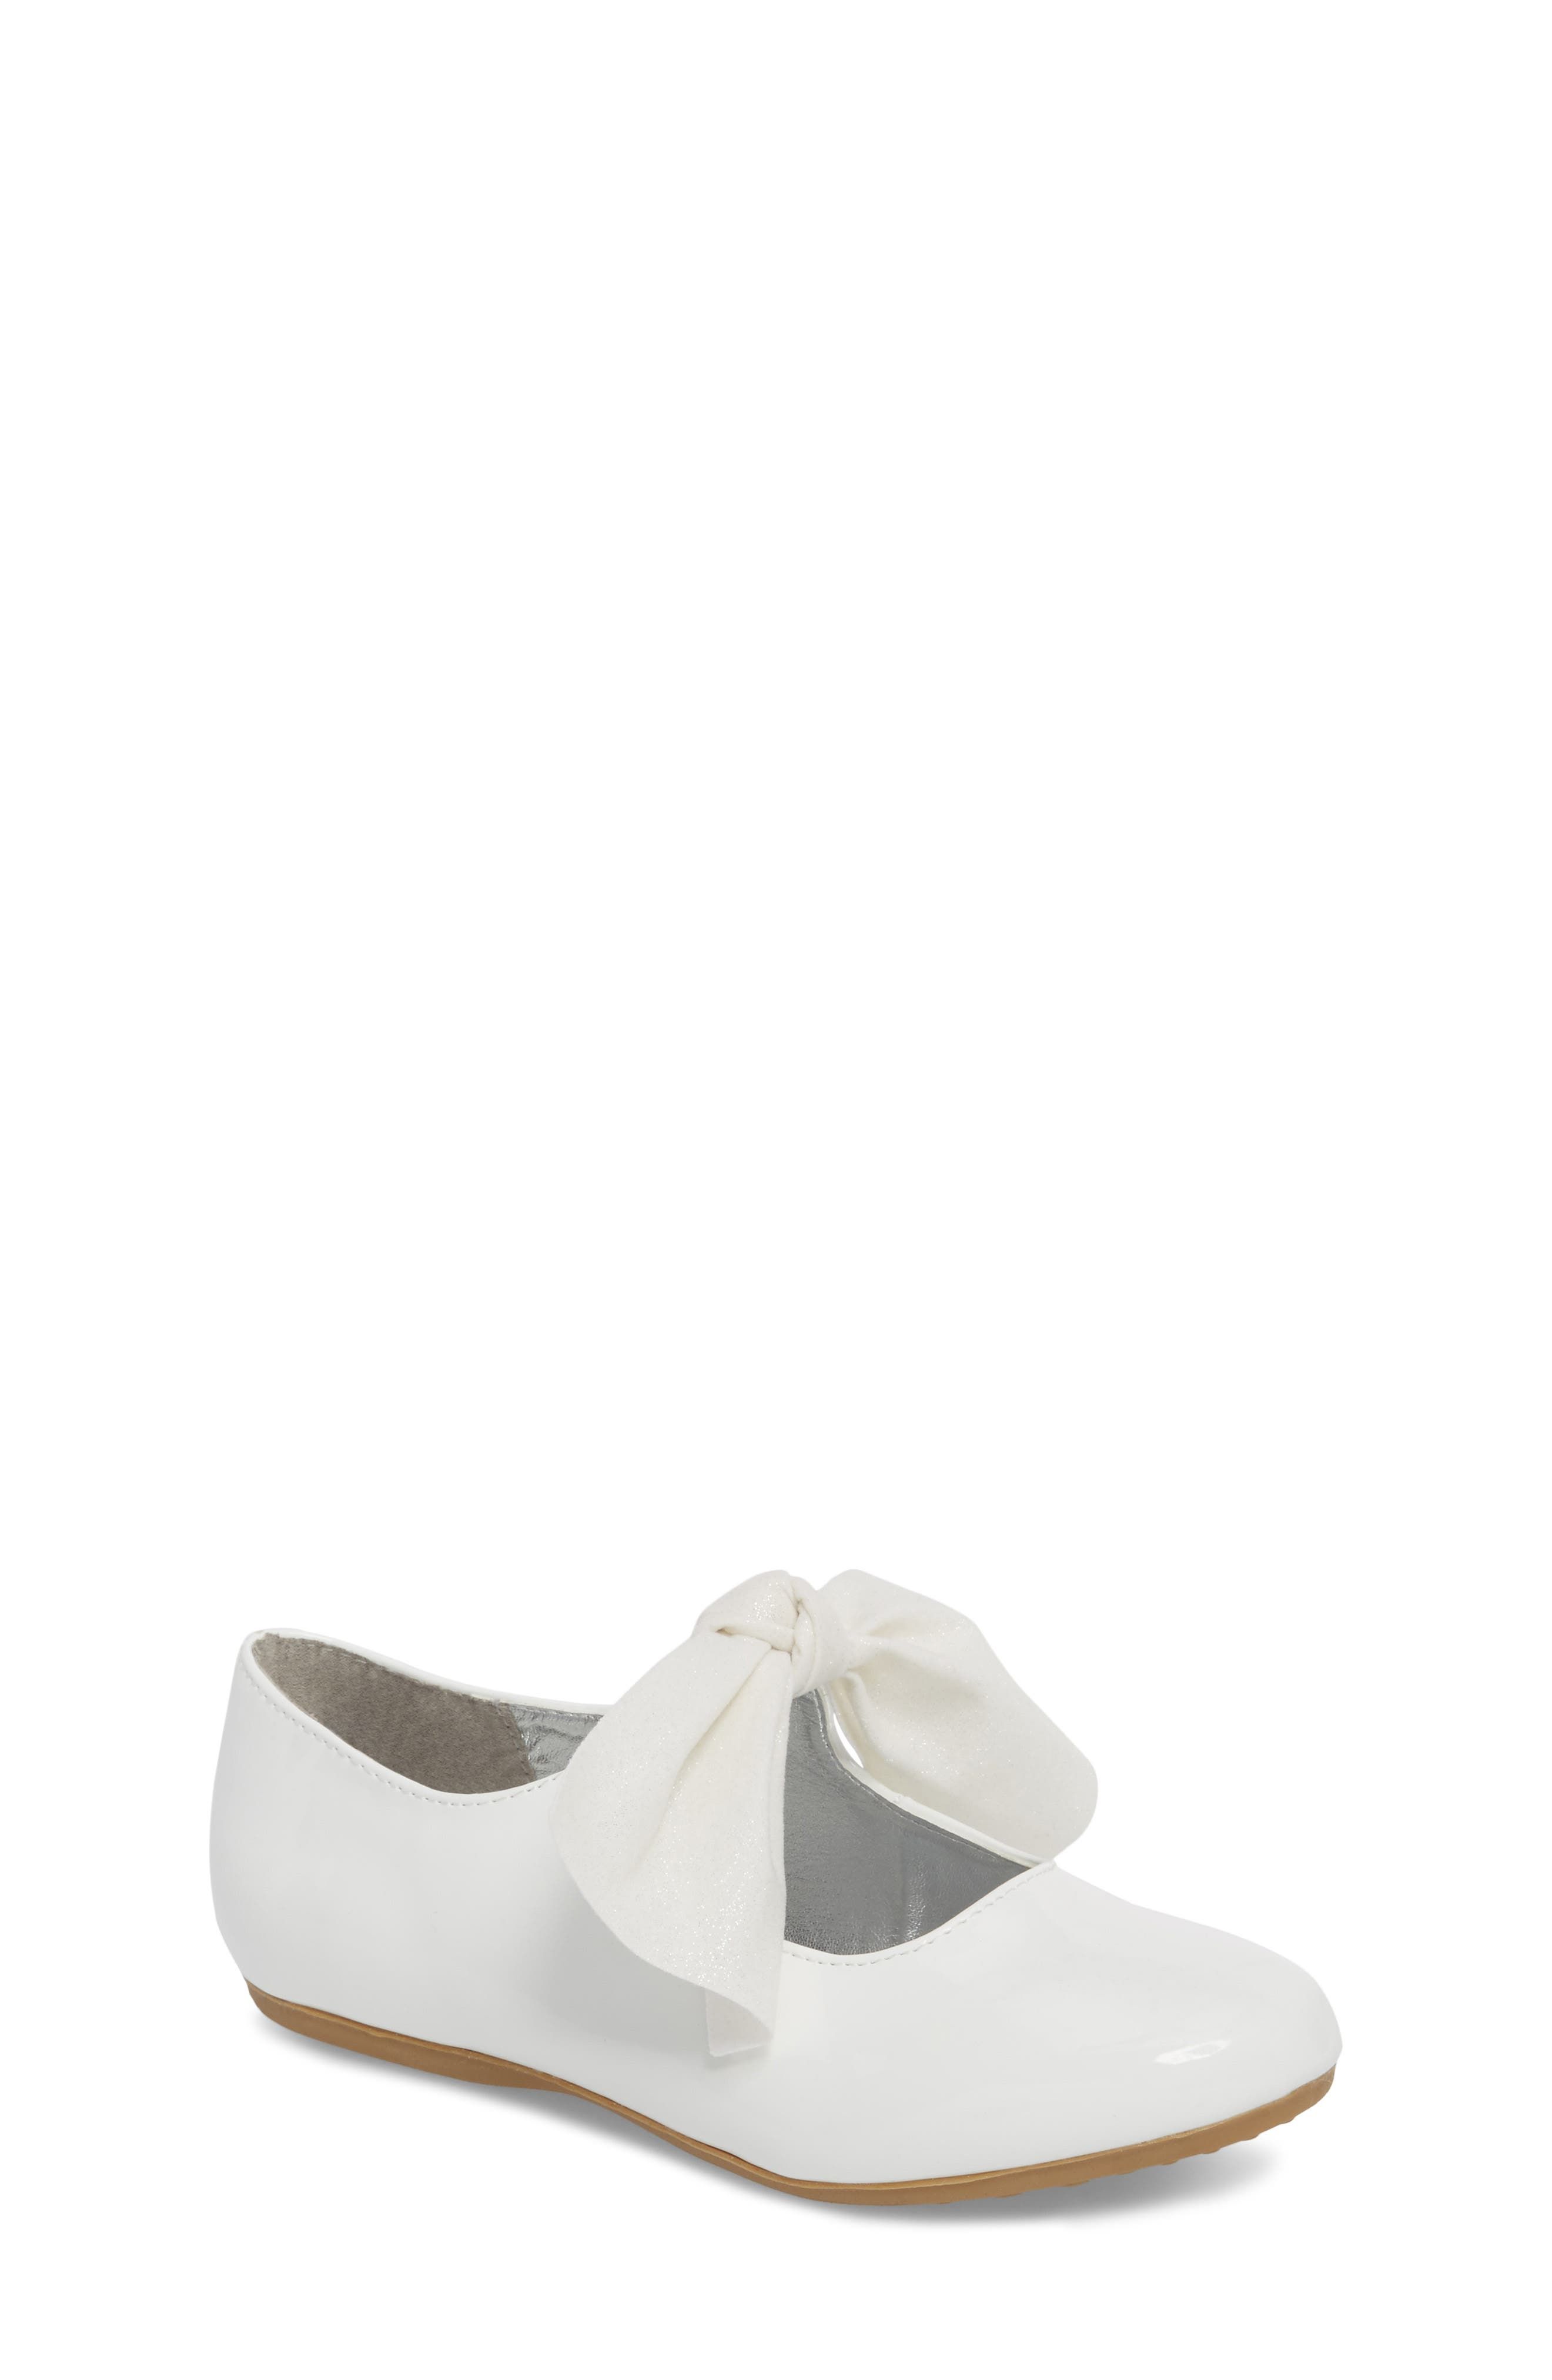 KENNETH COLE NEW YORK Reaction Kenneth Cole Rose Bow Mary Jane Flat, Main, color, WHITE PATENT